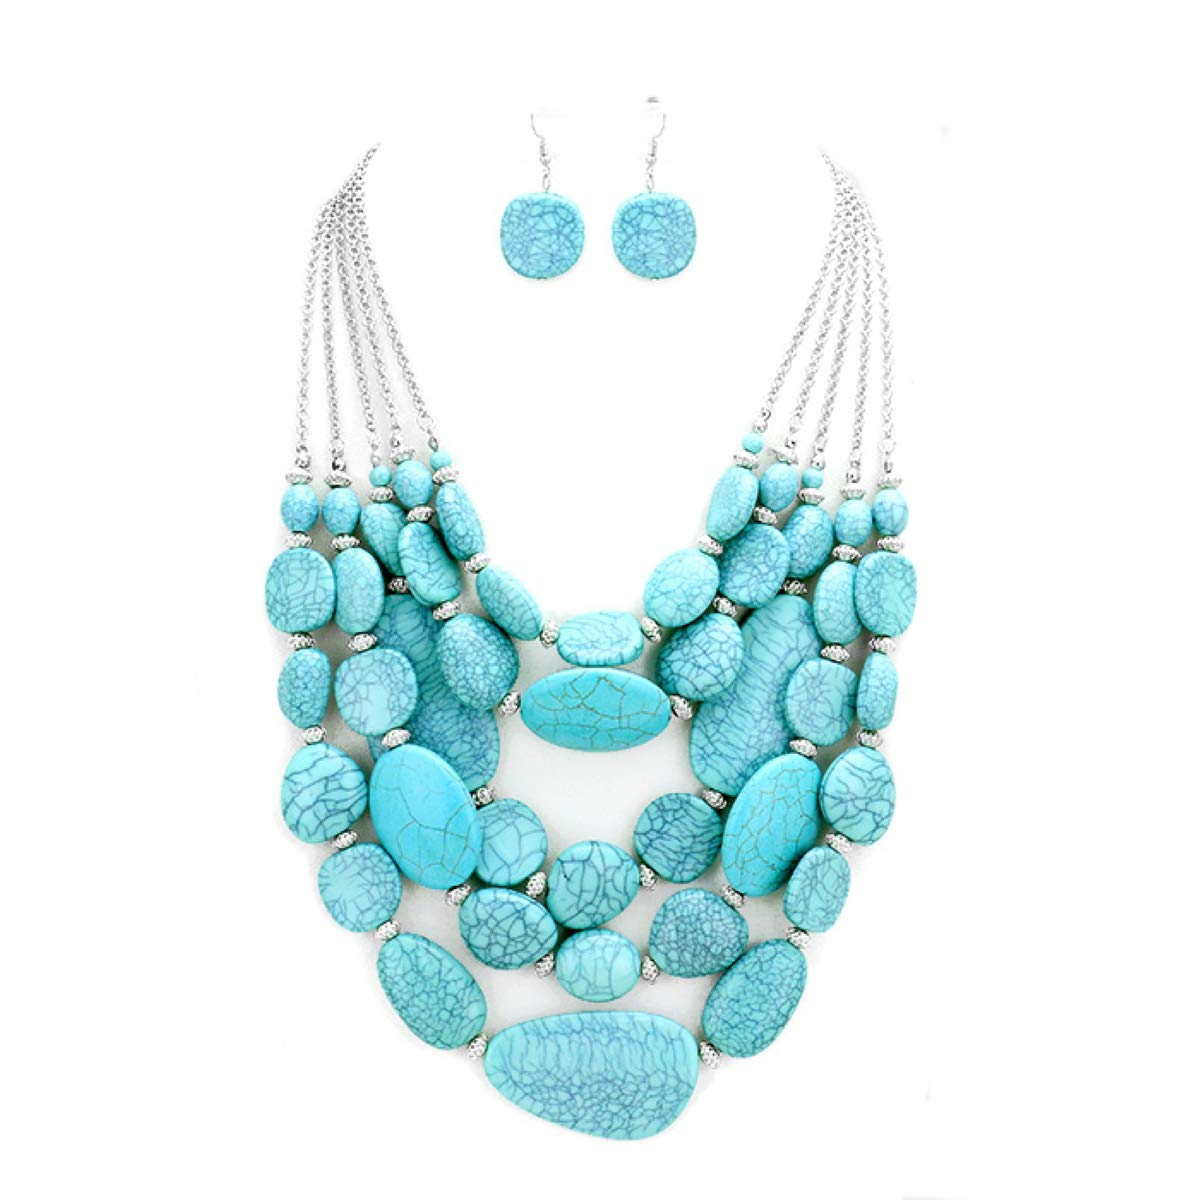 S.Uniklook Collection Statement Layered Strands Turquoise Stone-simulated Chunky Beads Necklace Earrings Set Gift Bijoux ... by S.Uniklook Collection